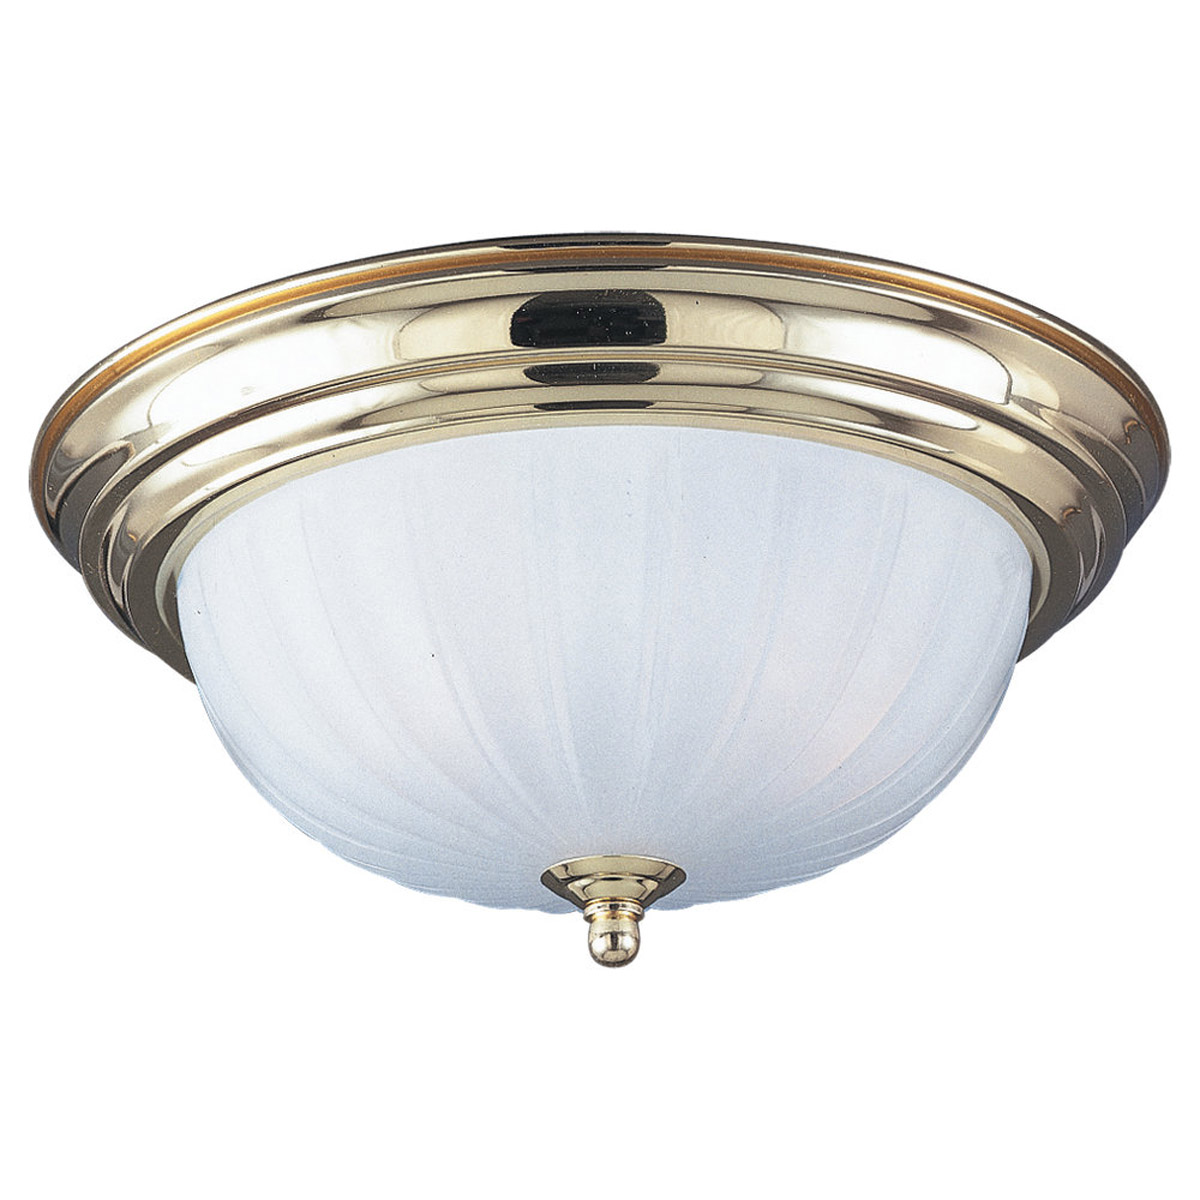 Sea Gull Lighting Linwood 2 Light Flush Mount in Polished Brass 7505-02